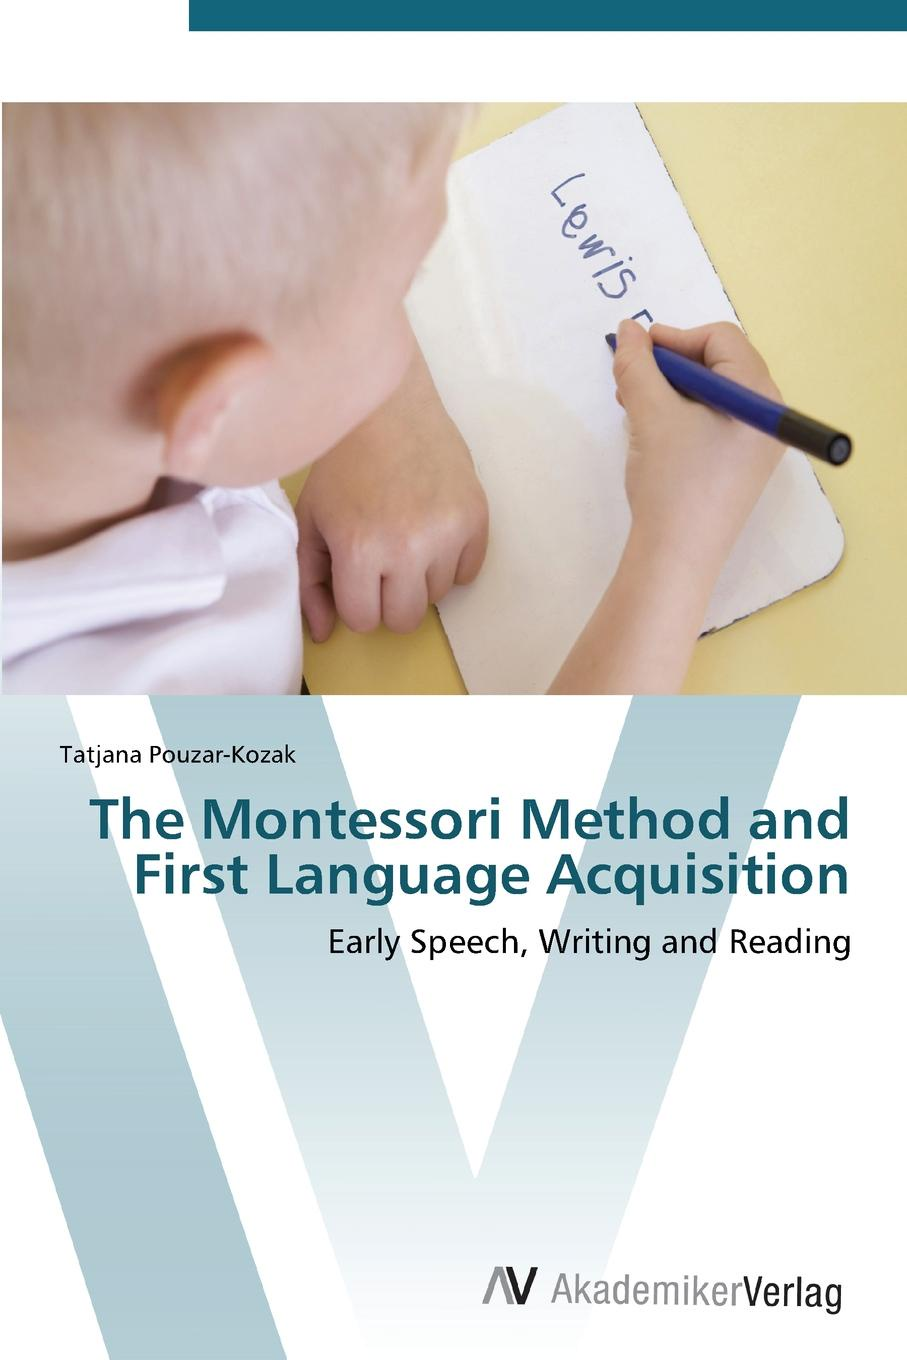 Pouzar-Kozak Tatjana The Montessori Method and First Language Acquisition kerstin köck language acquisition nativism vs contructivism